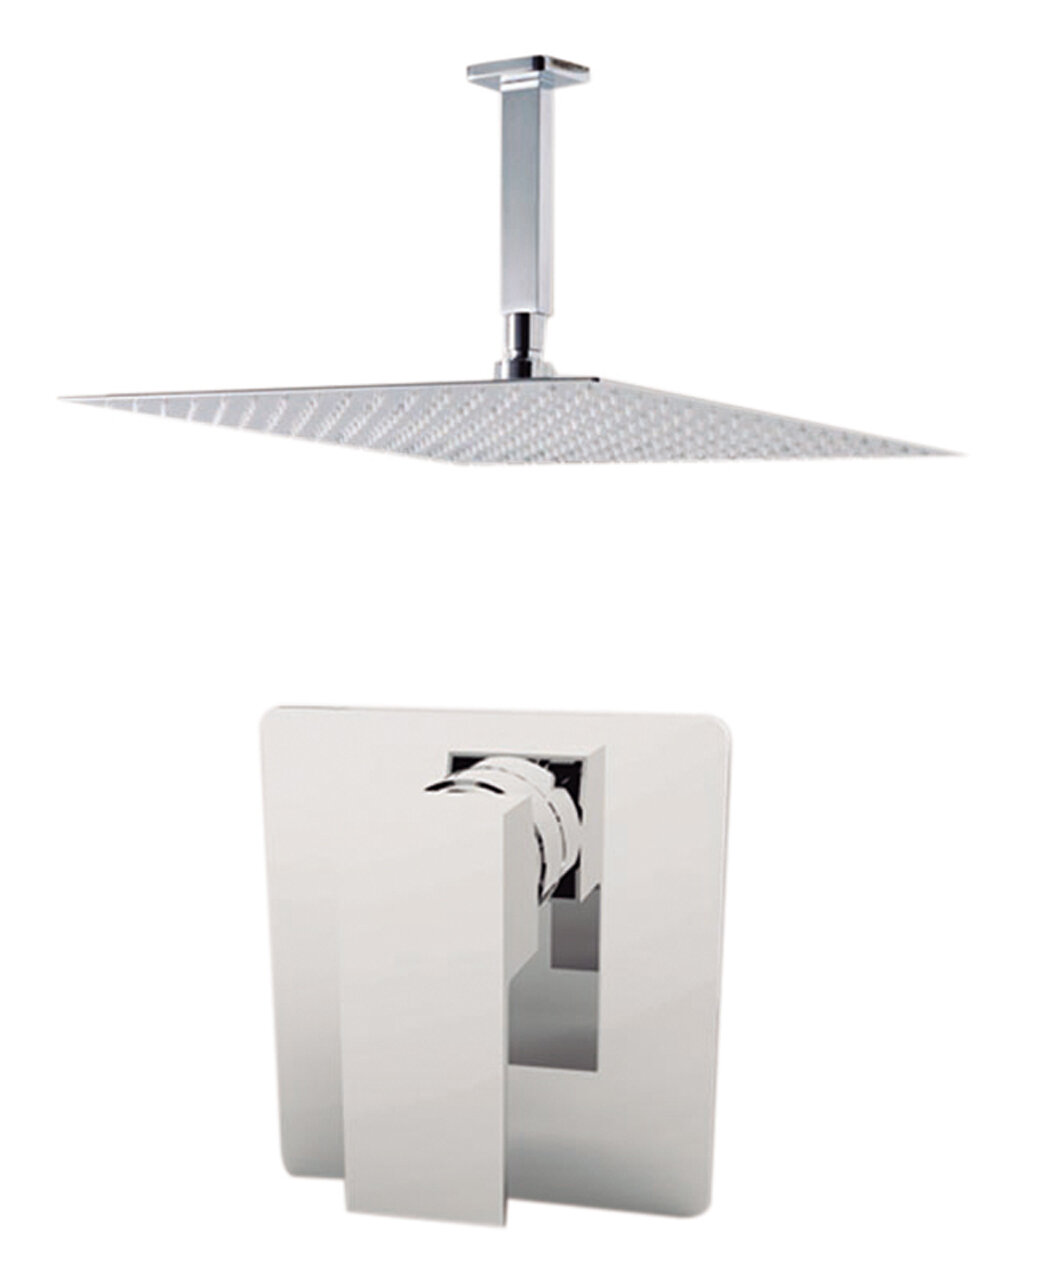 Aquamoon Milan Volume Control Shower Faucet With Rough In Valve Trim And Diverter Wayfair